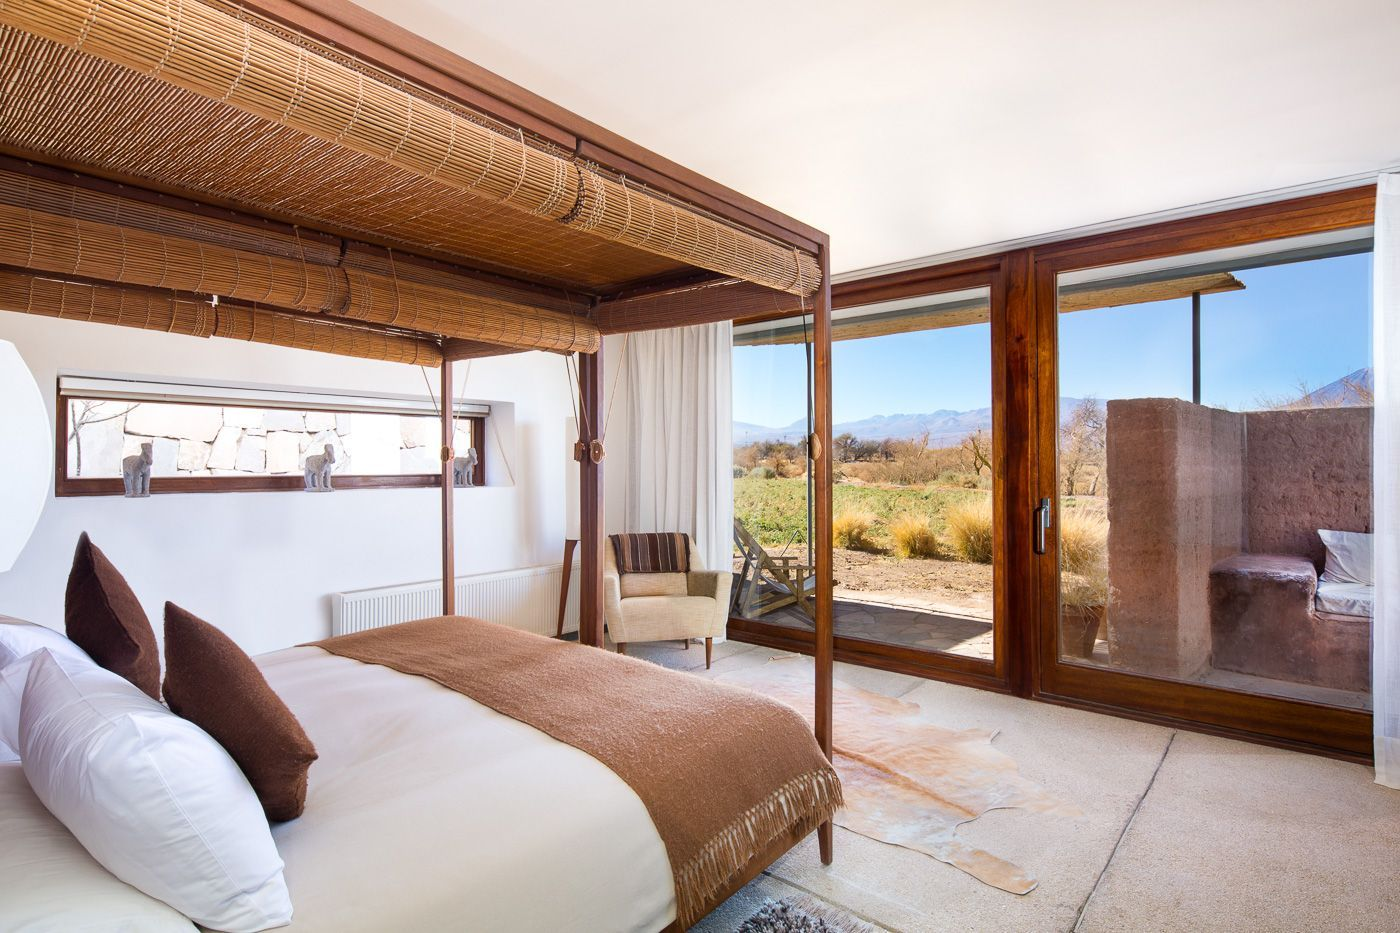 Oriente Rooms Tierra